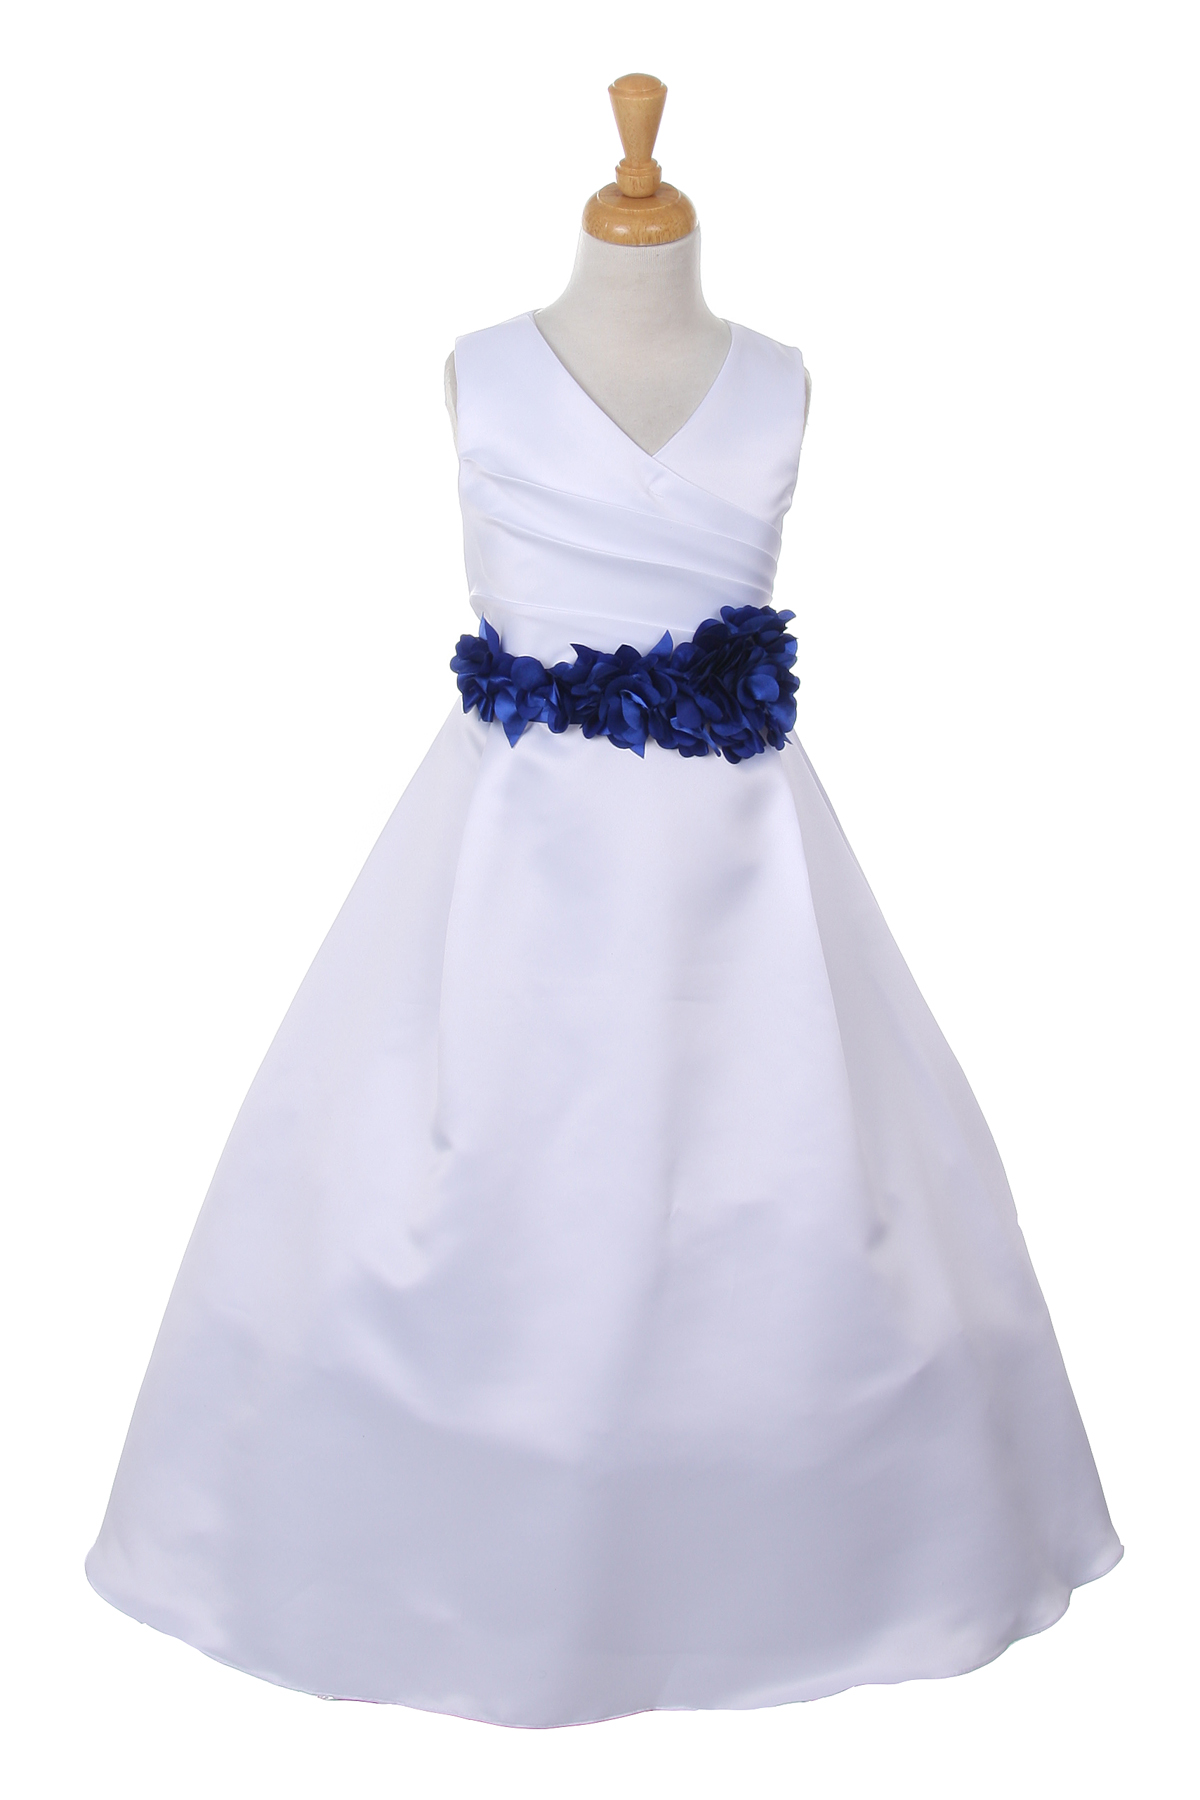 white dress with royal blue flower sash